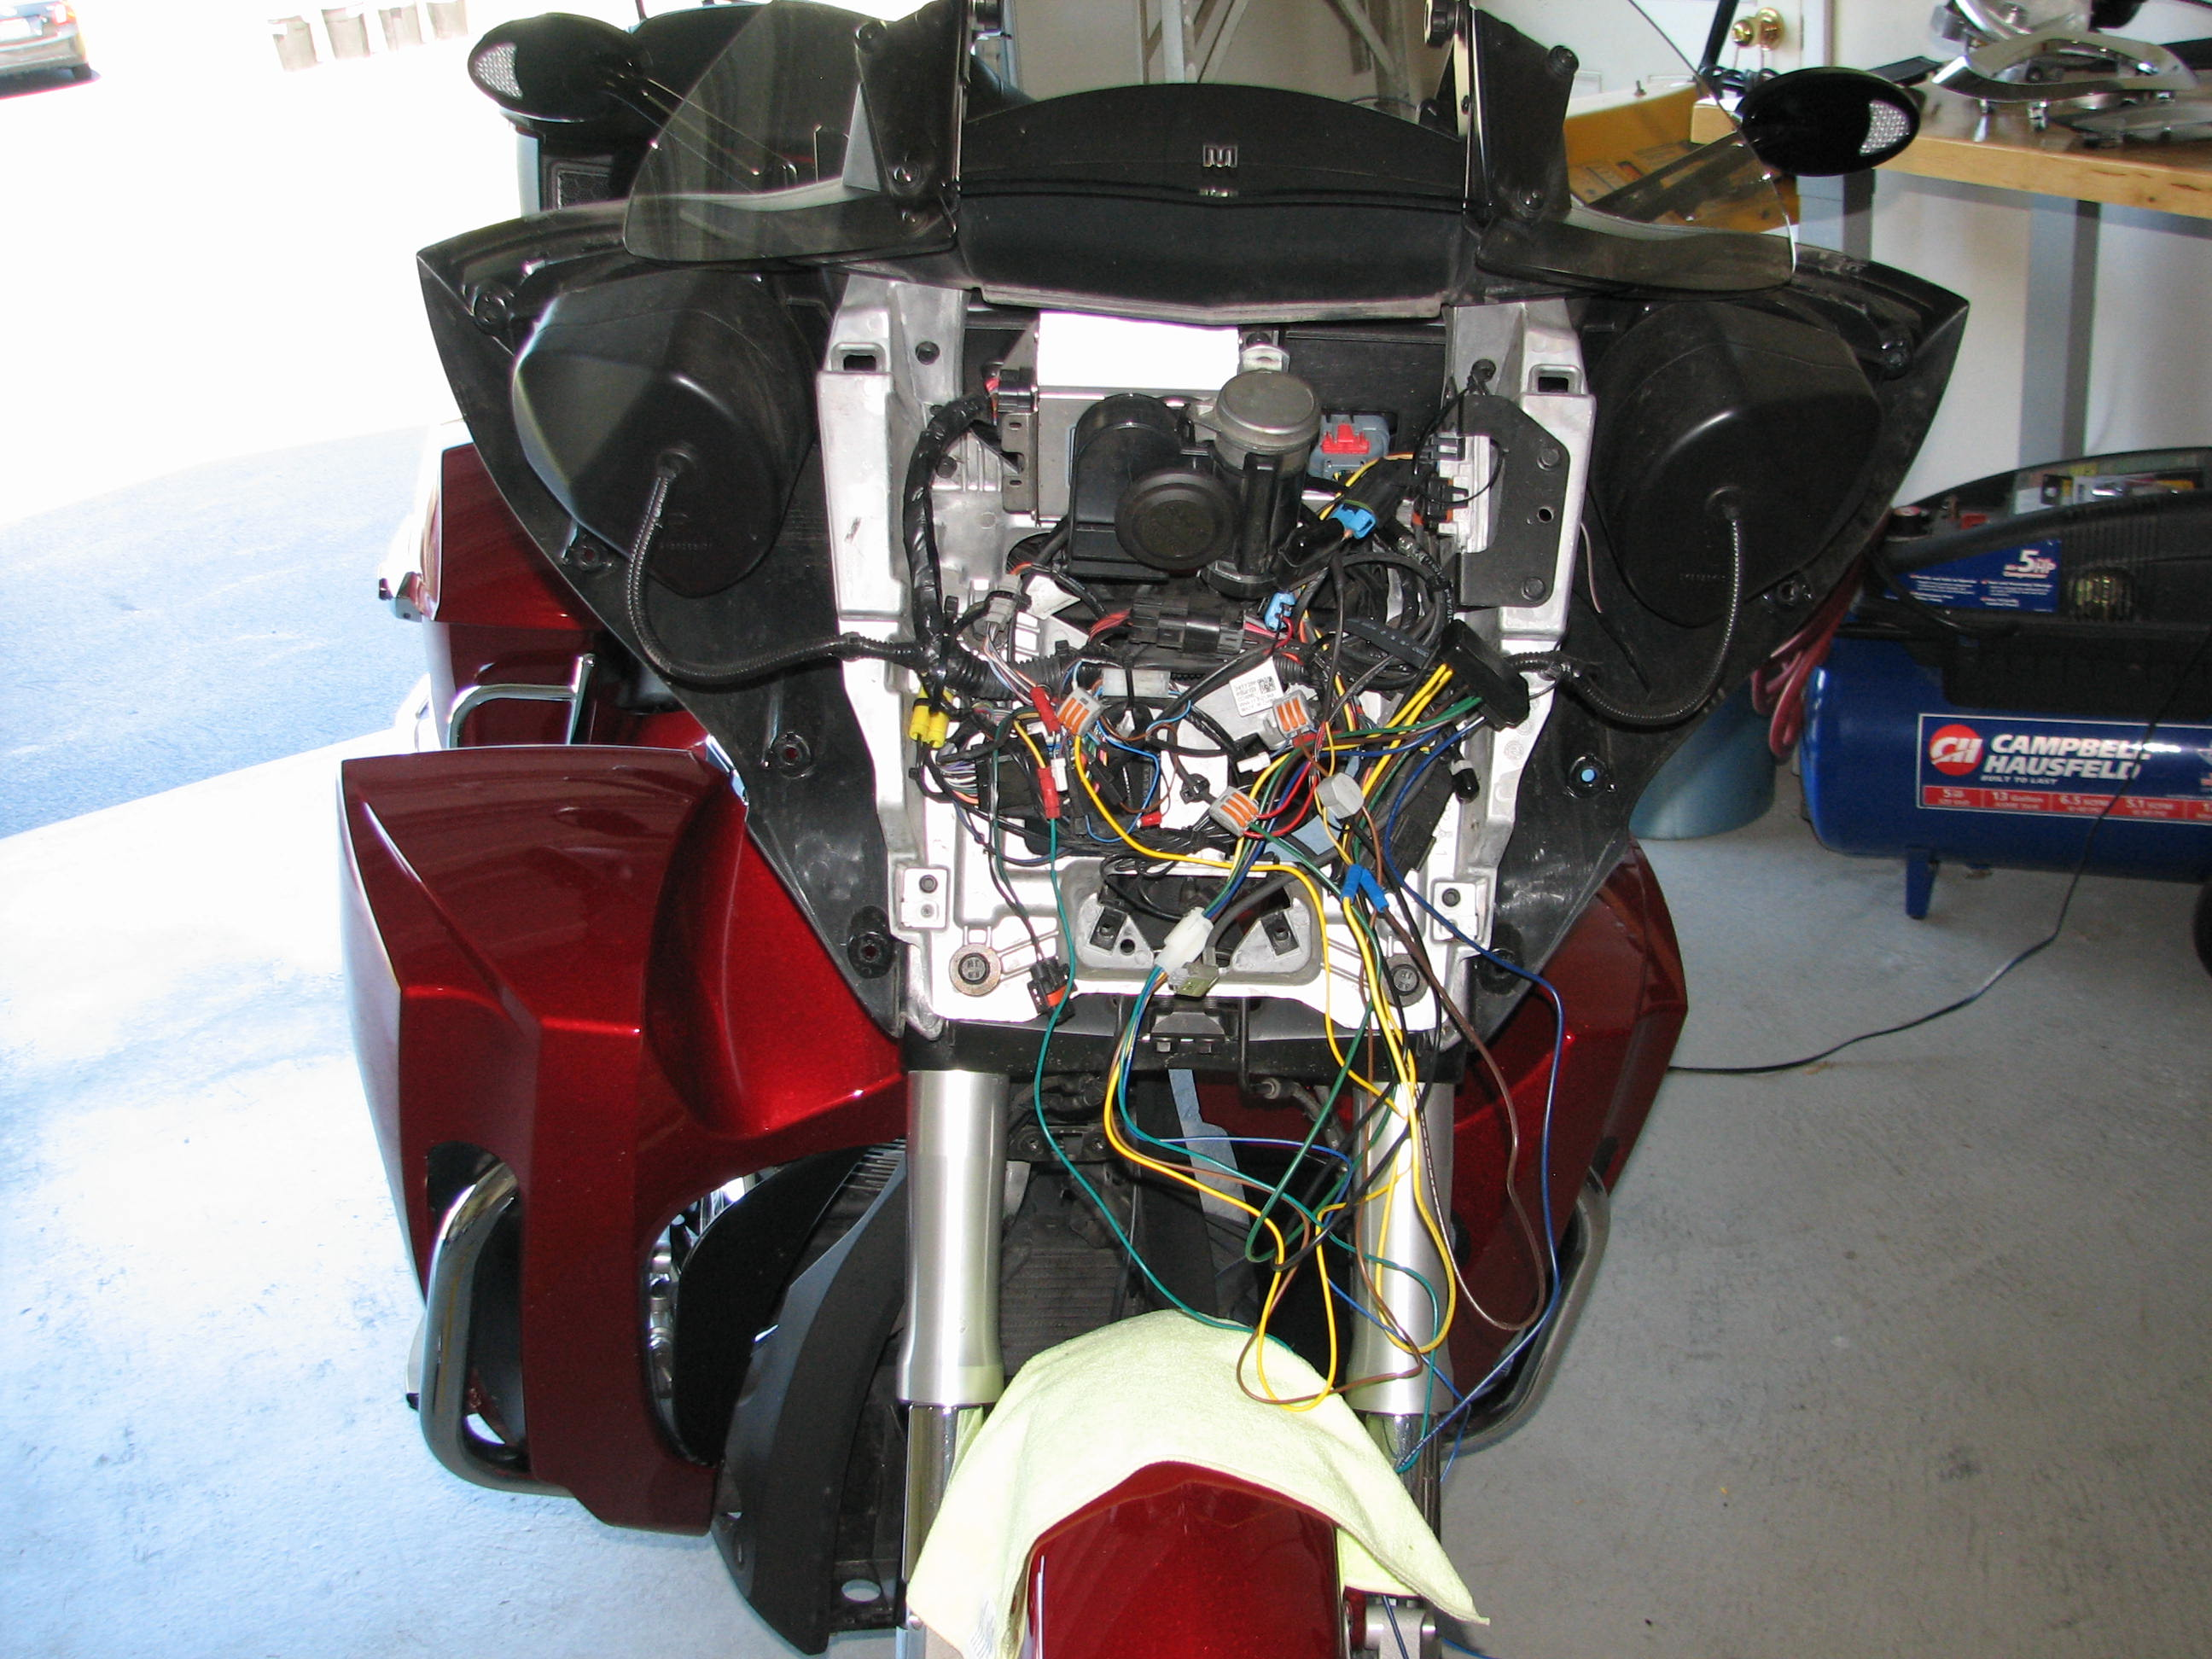 Adding Rivco Led Mirrors To A Victory Cross Country Motorcycle Wiring Harness Size